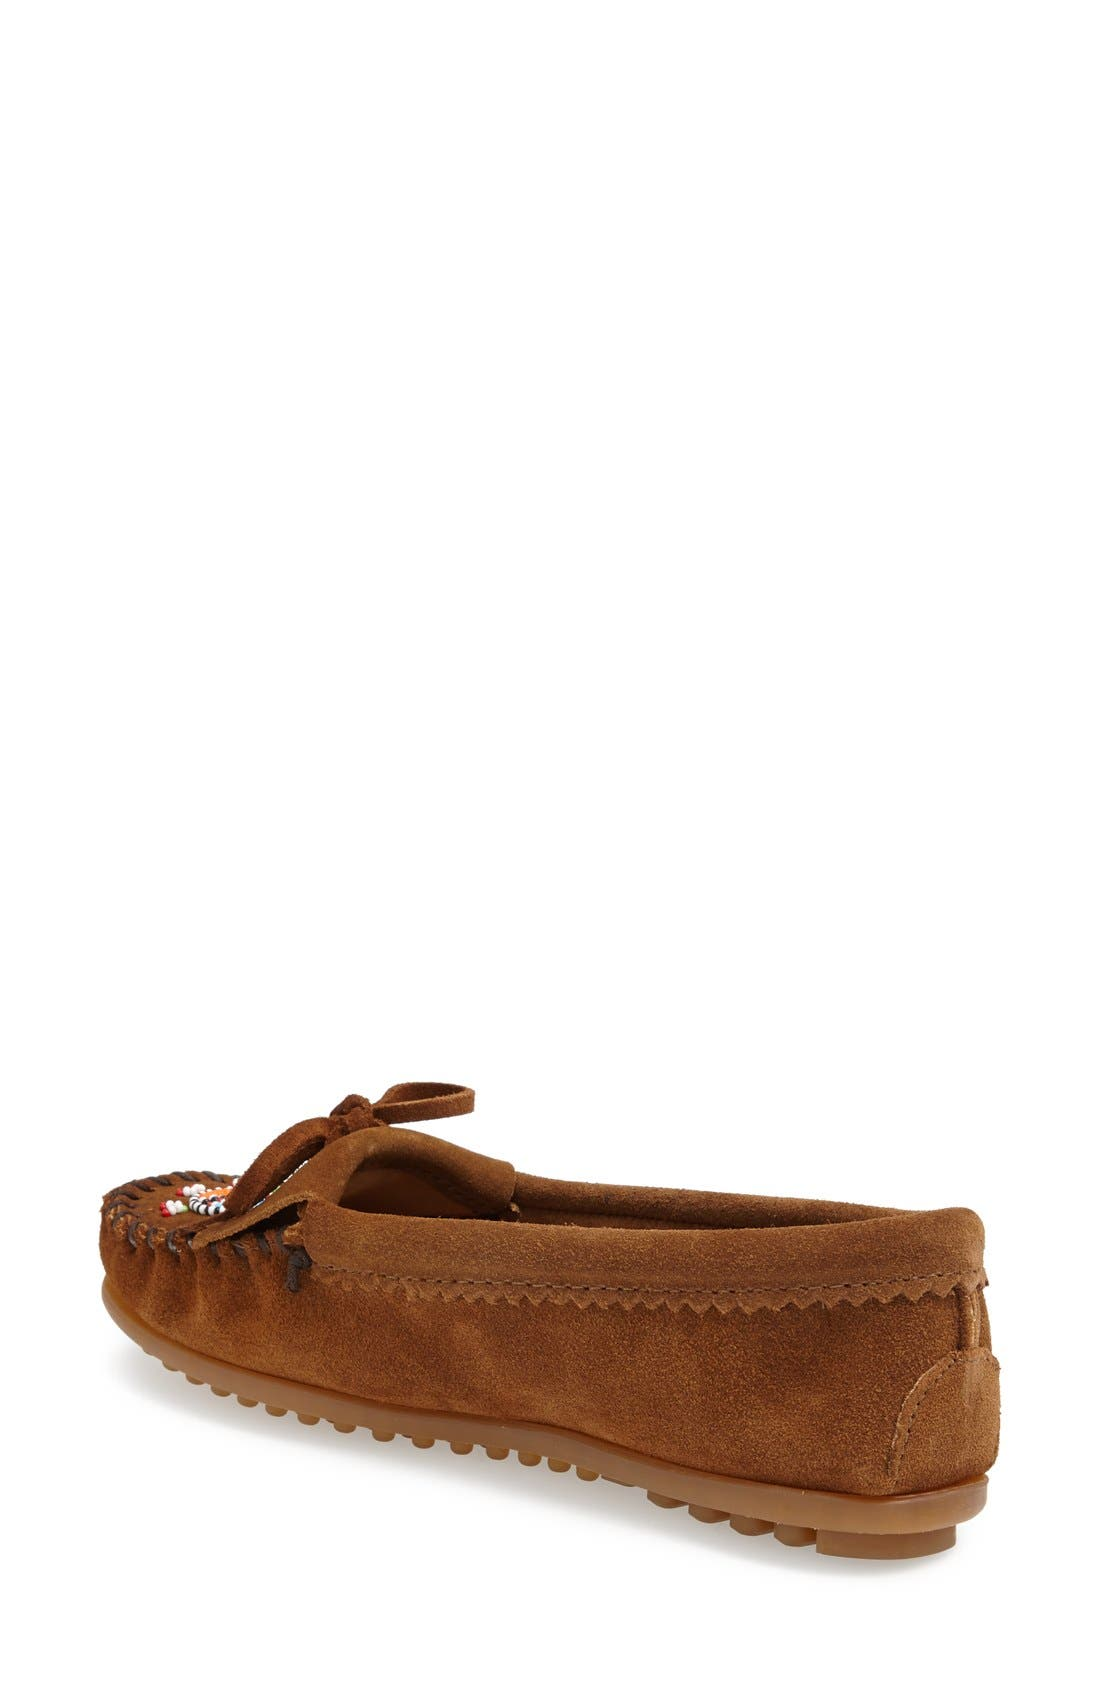 'Me to We Artisans - Kilty' Beaded Moccasin,                             Alternate thumbnail 2, color,                             230